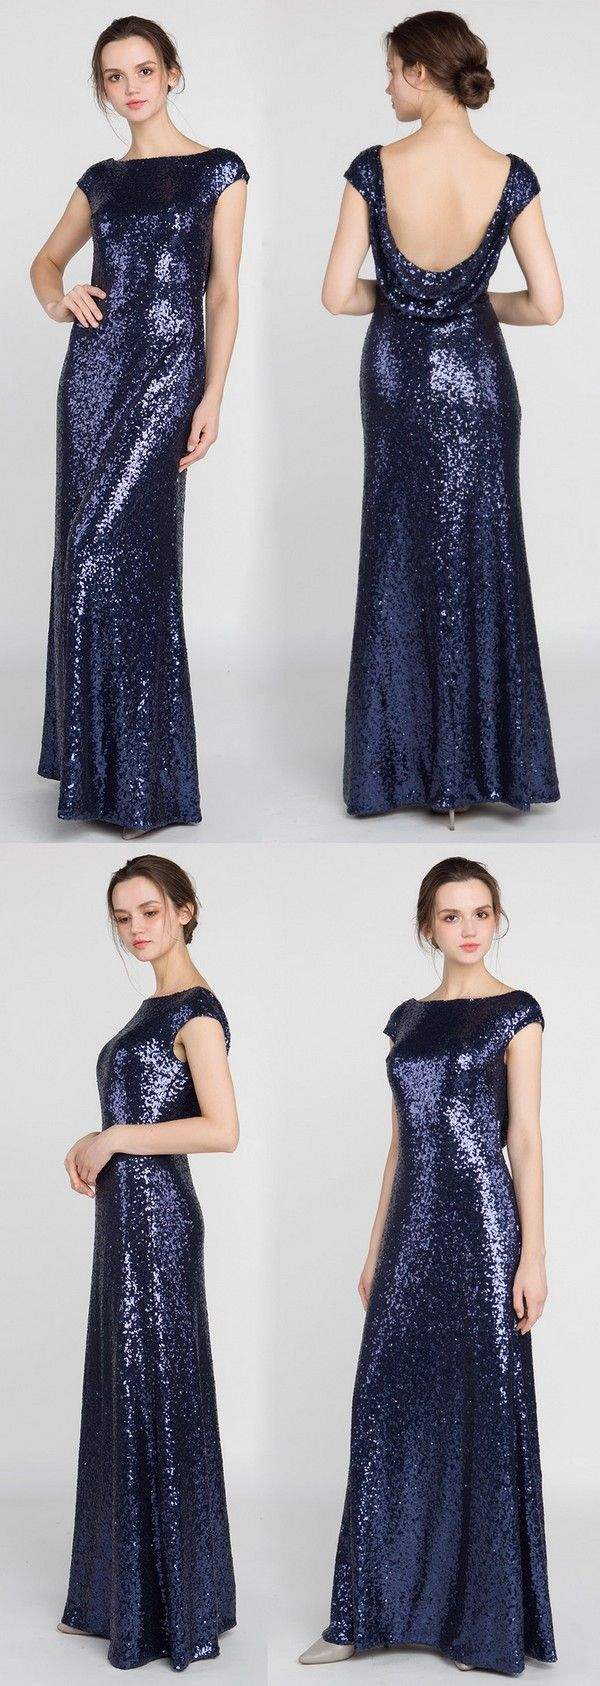 Metallic sequined navy long bridesmaid dress with cowl back tbqp